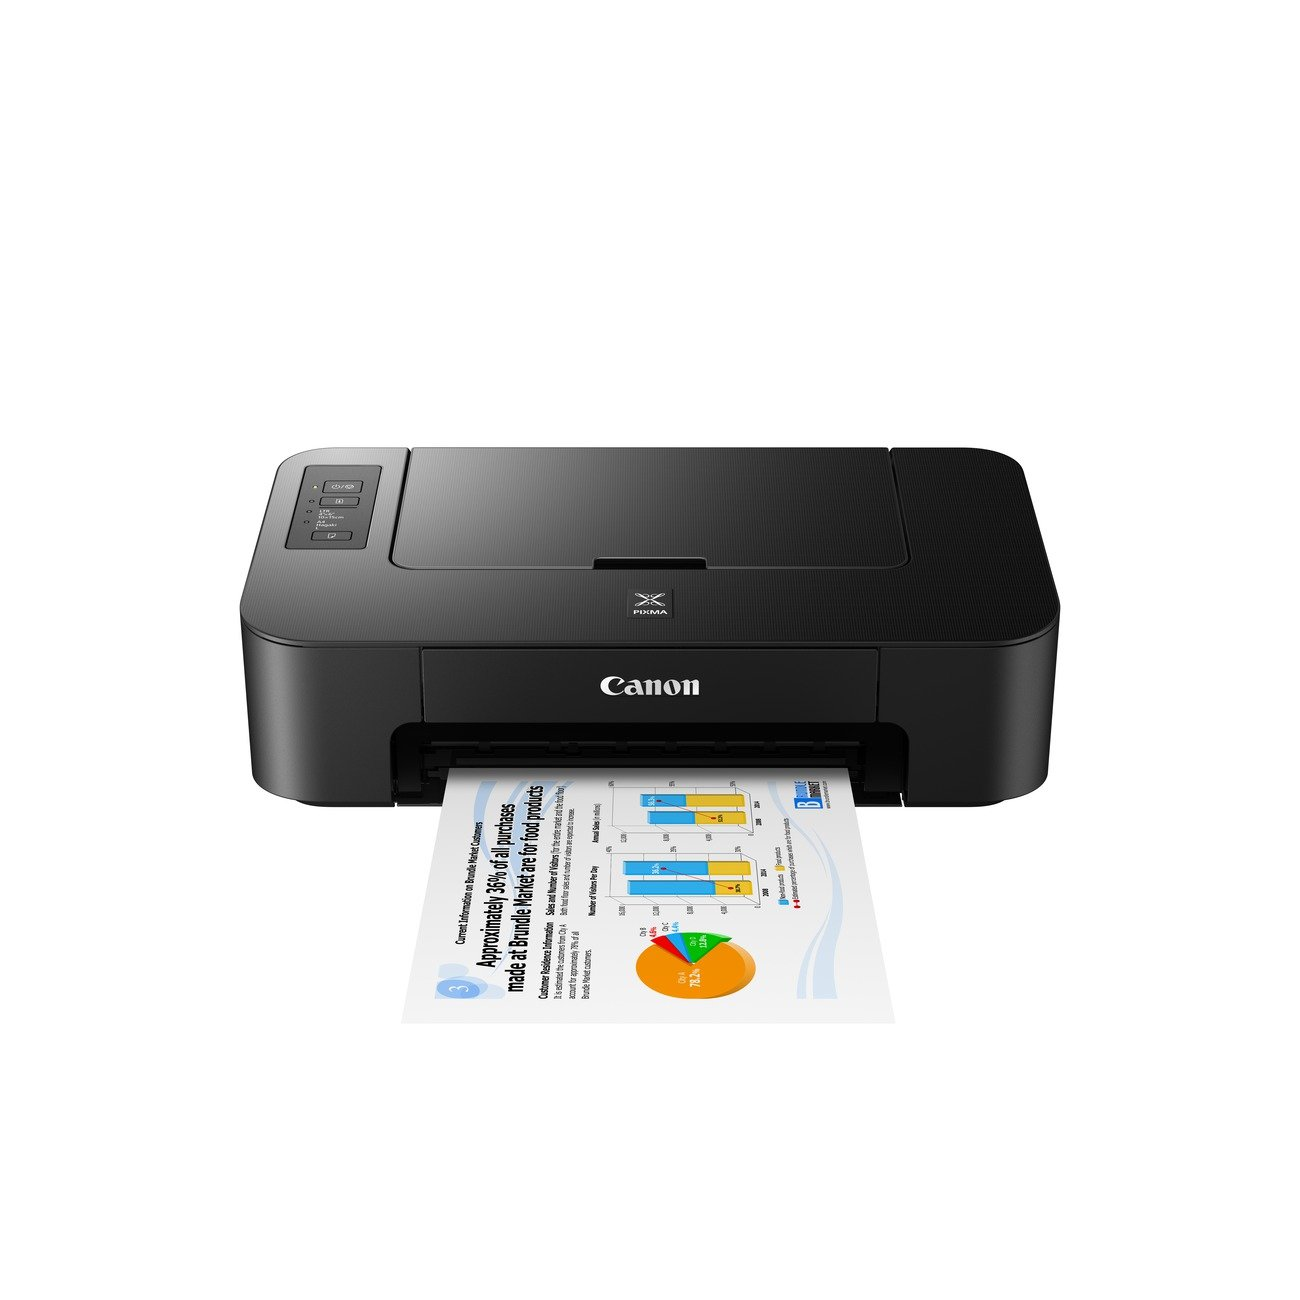 Amazon.com: Canon - Printer Canon 2319C006 USB: Clothing